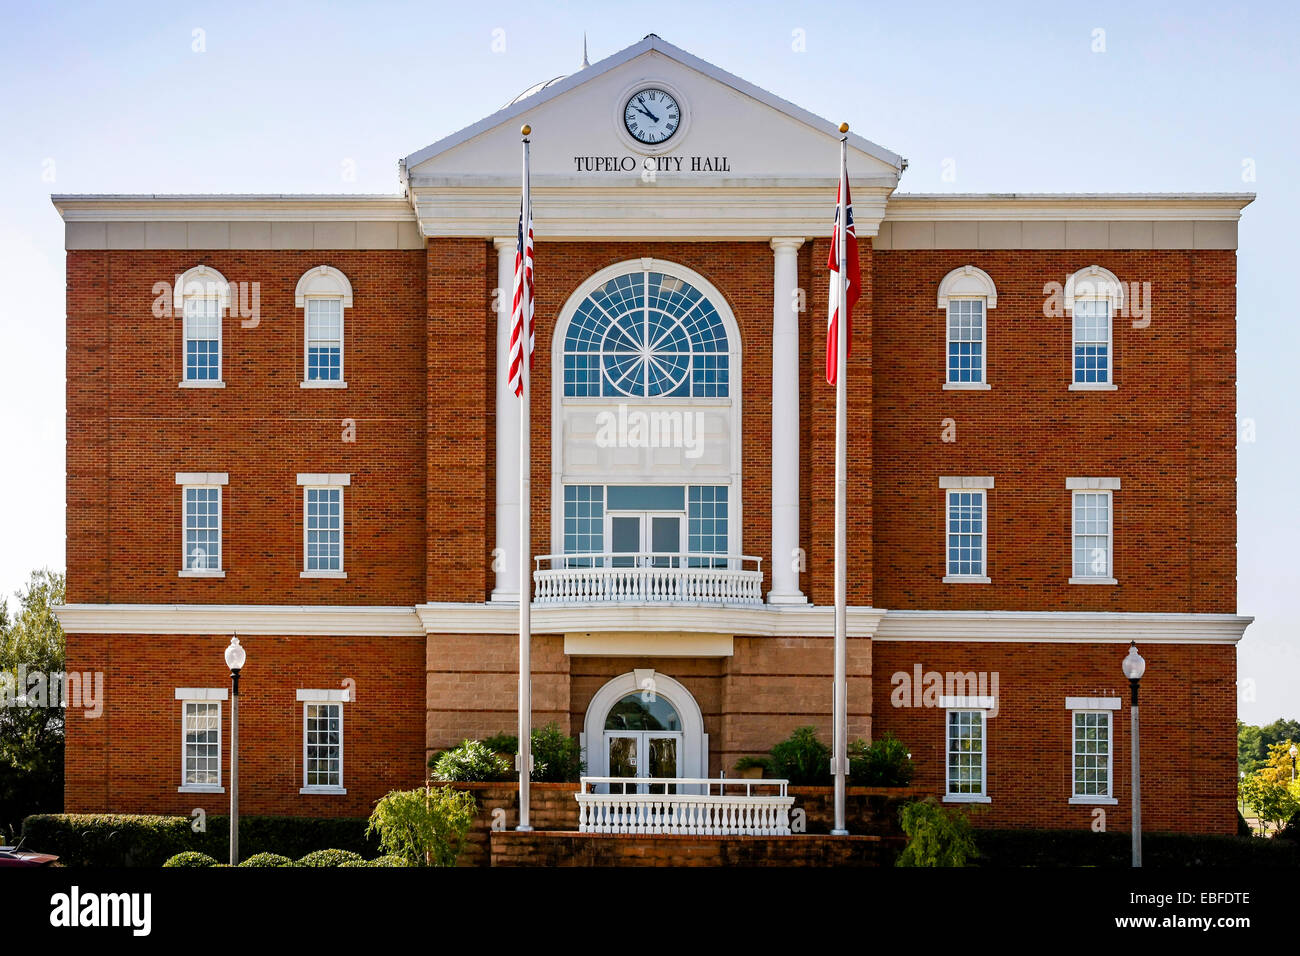 Tupelo City Hall building. Built on the site of the 1956 Mississippi-Alabama State Fair & Dairy Show. - Stock Image